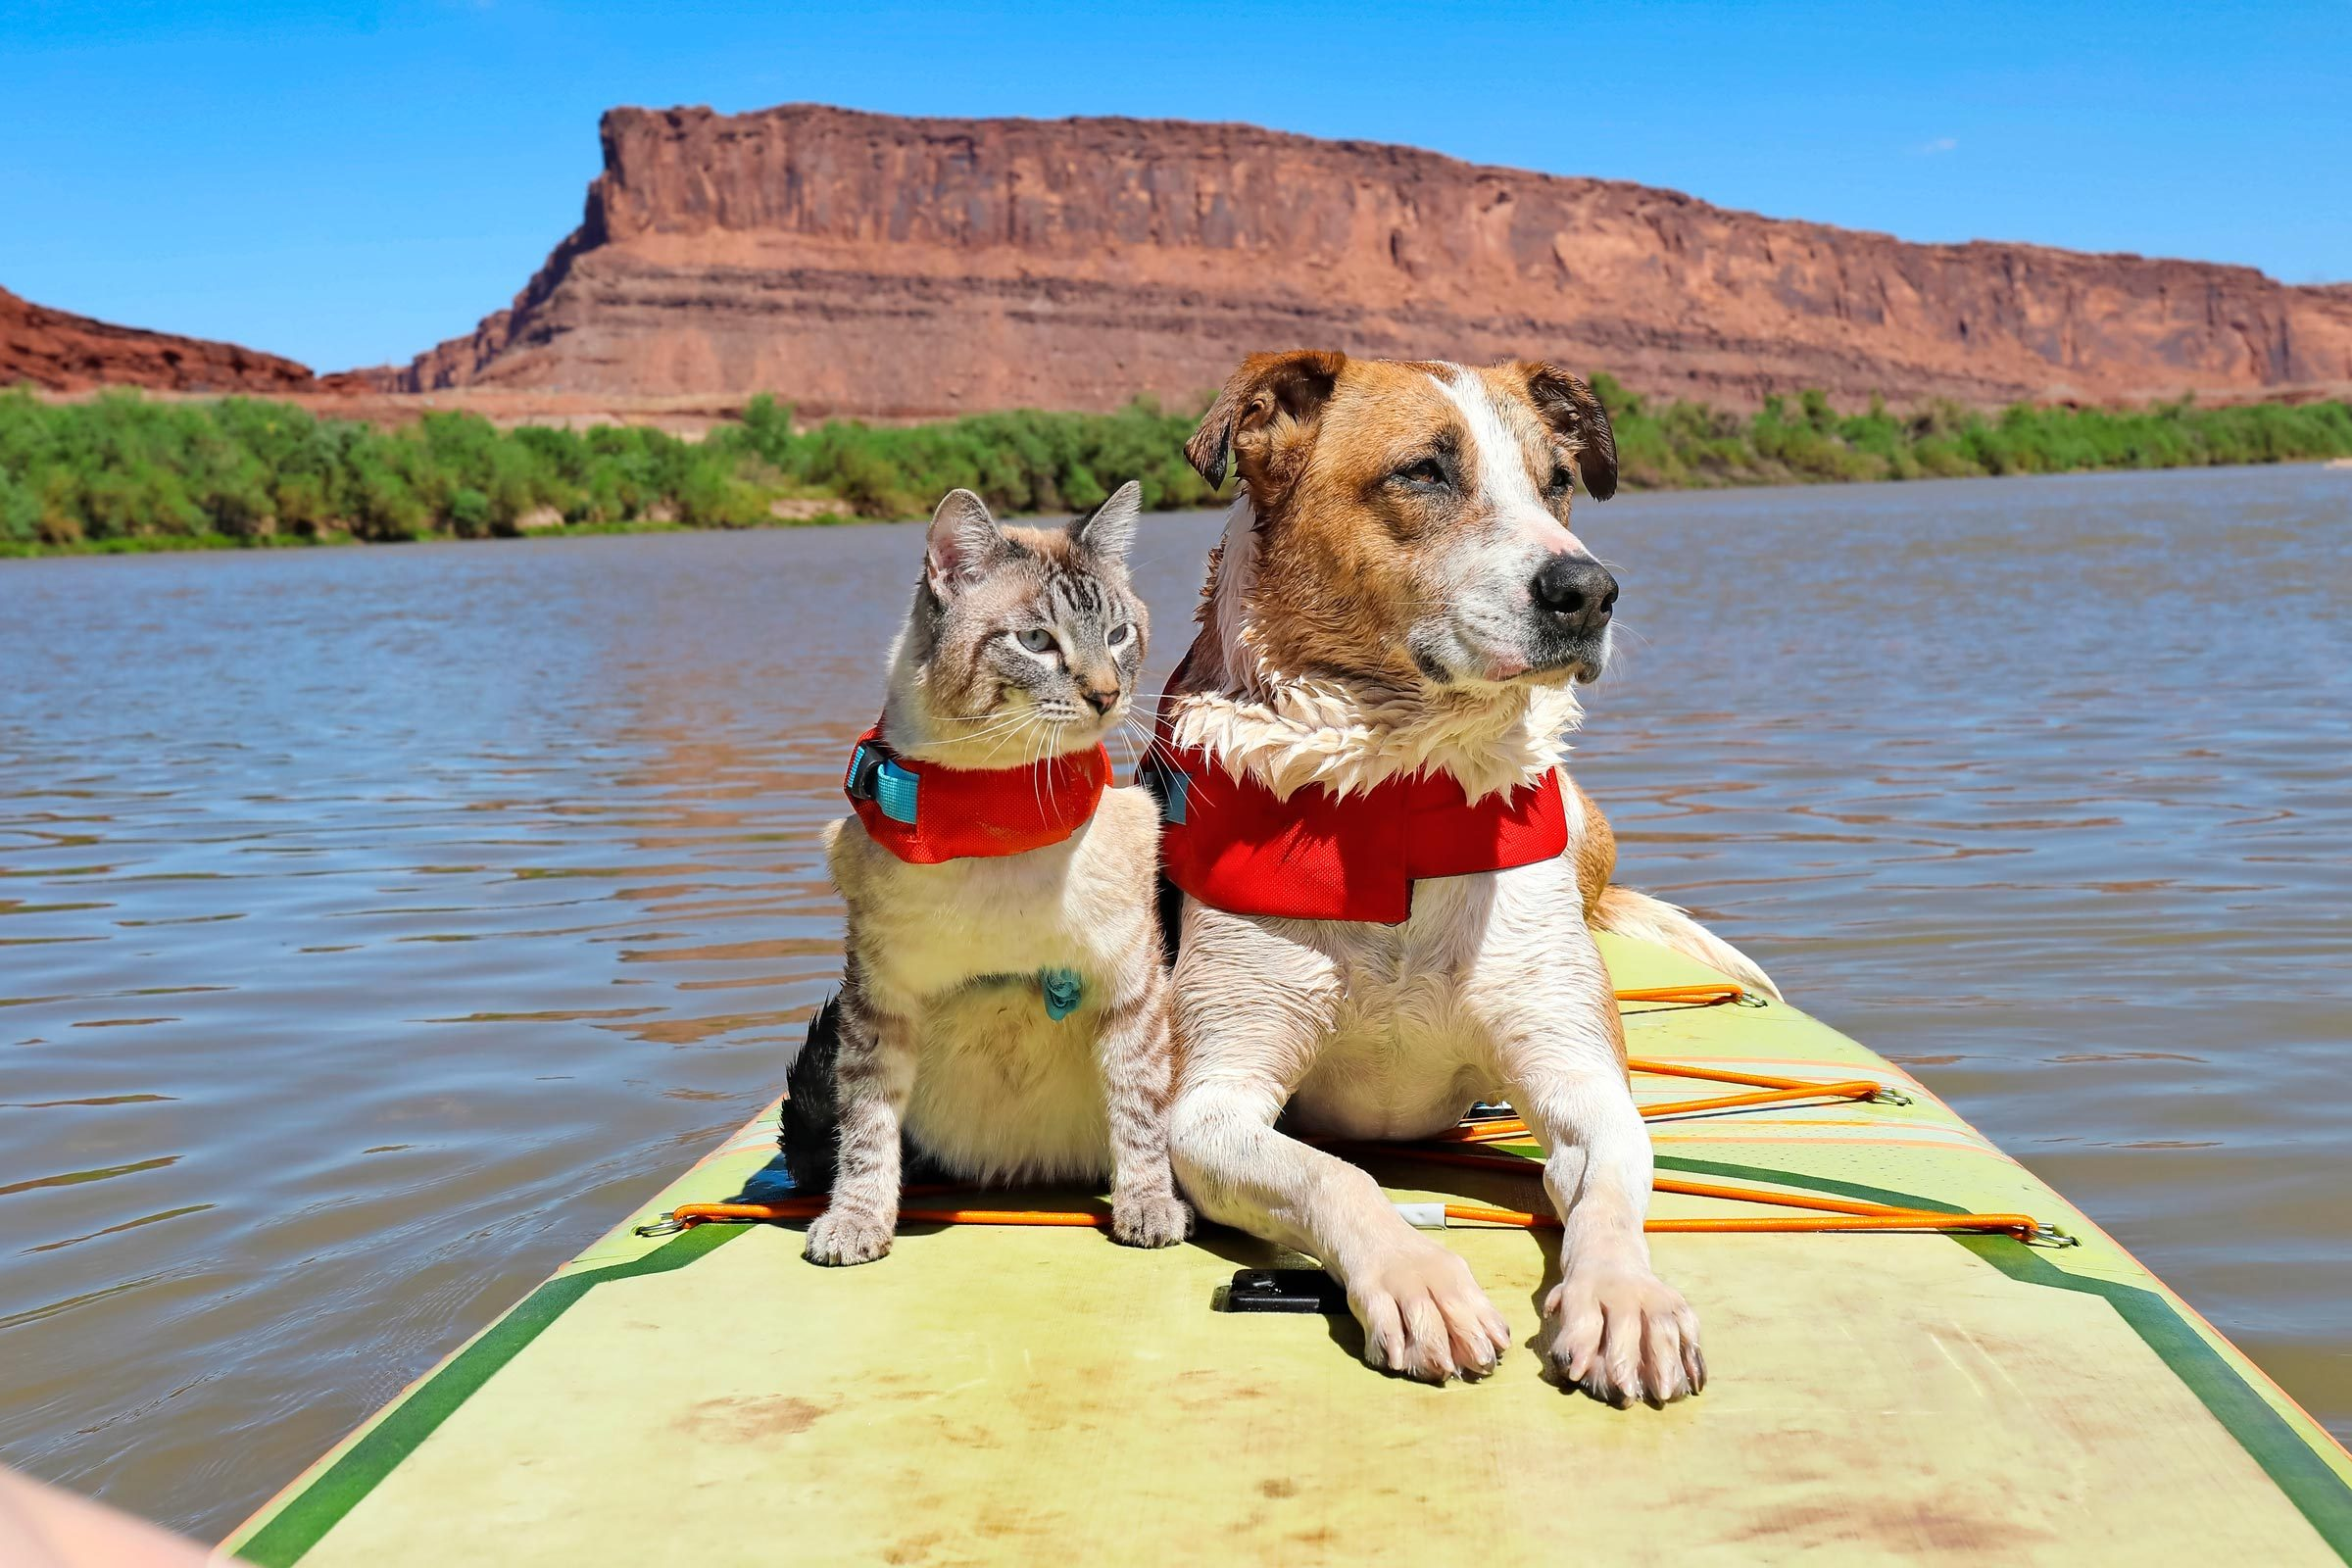 Henry And Baloo sitting on a paddleboard on utah's colorado river